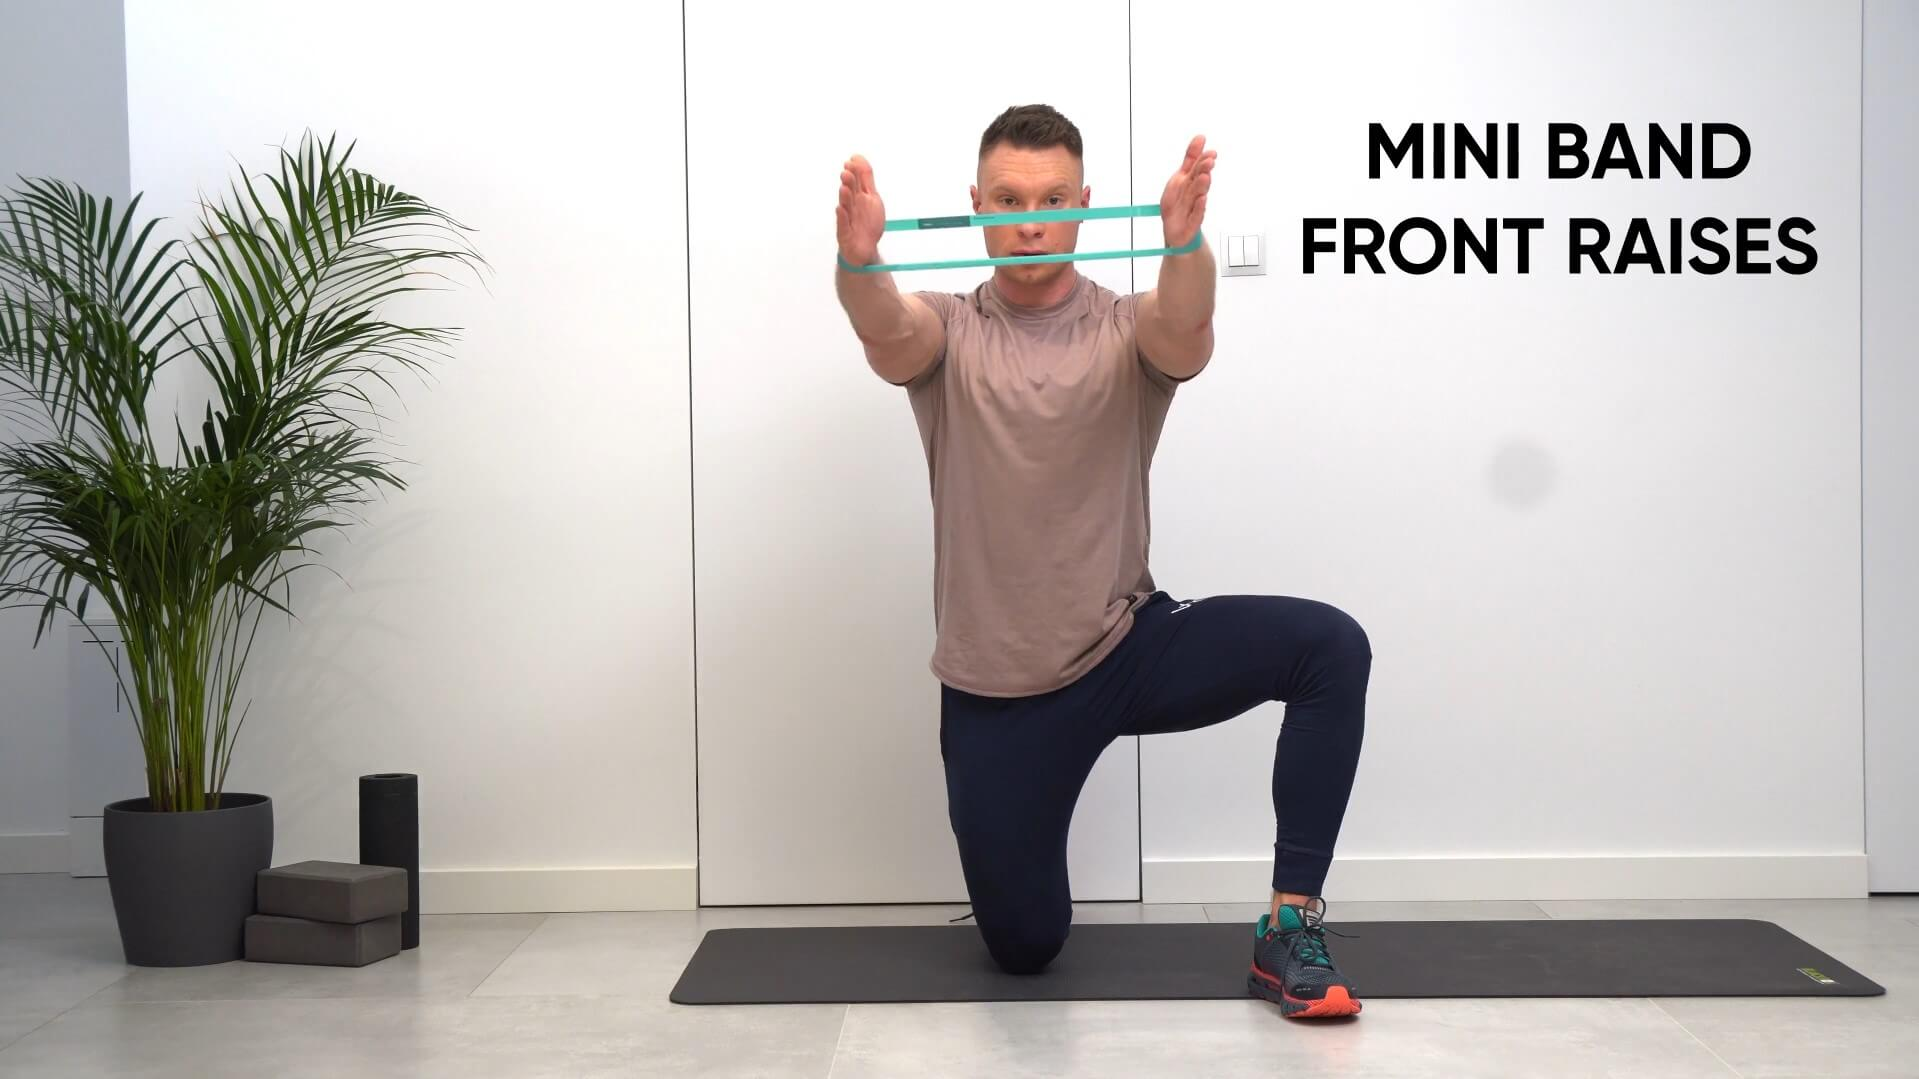 Mini band front raises